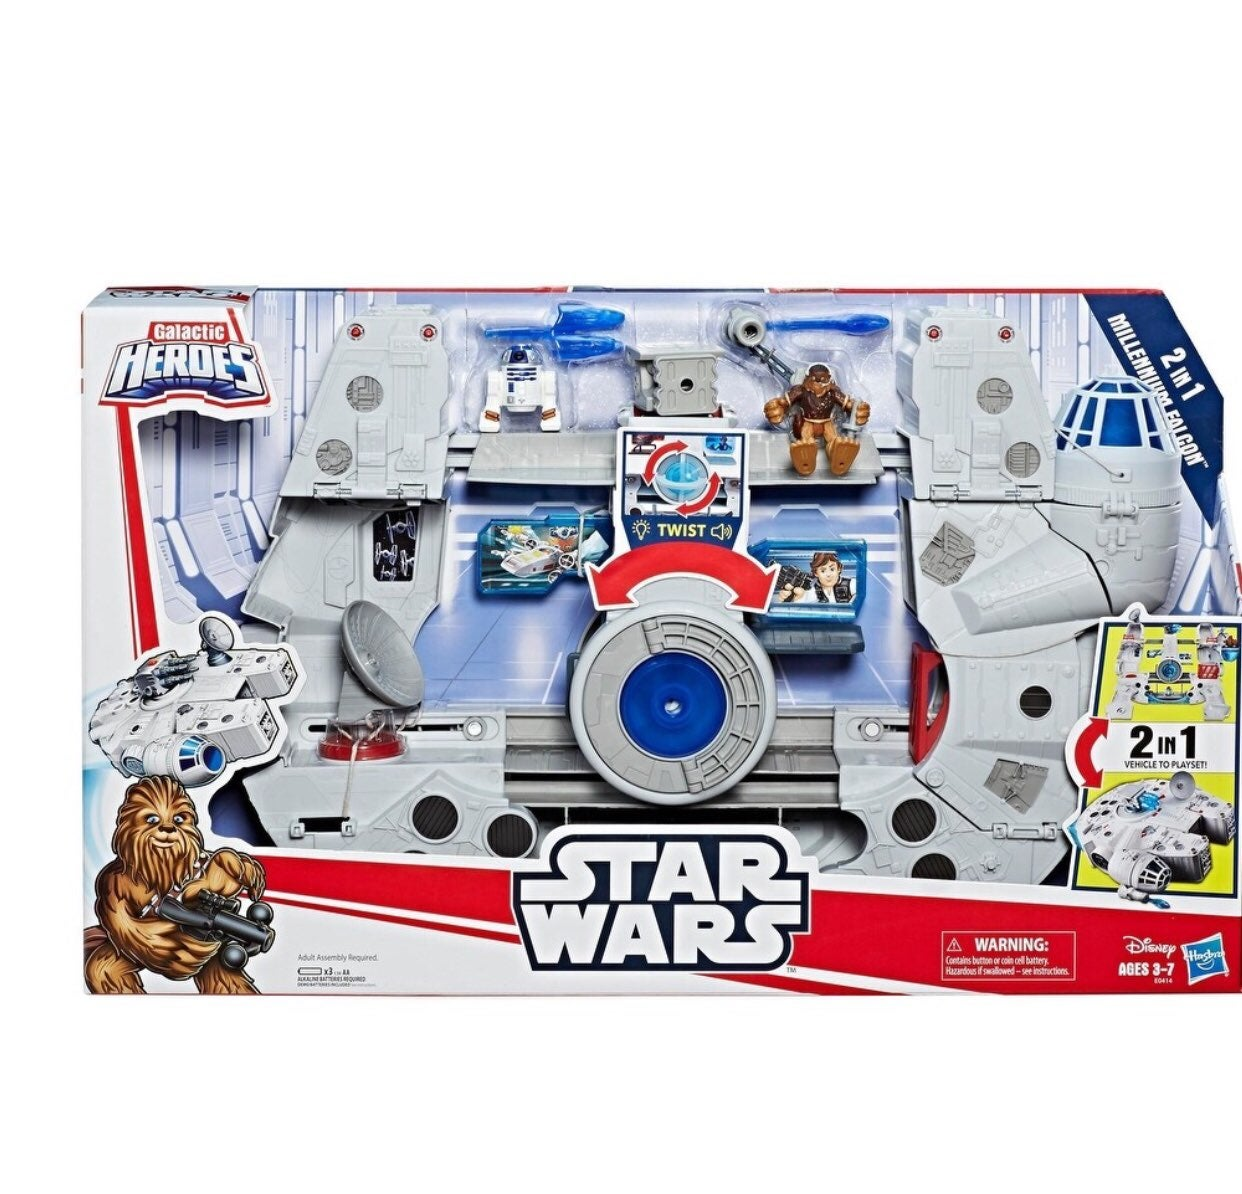 Star Wars:  Millennium Falcon  2 in 1